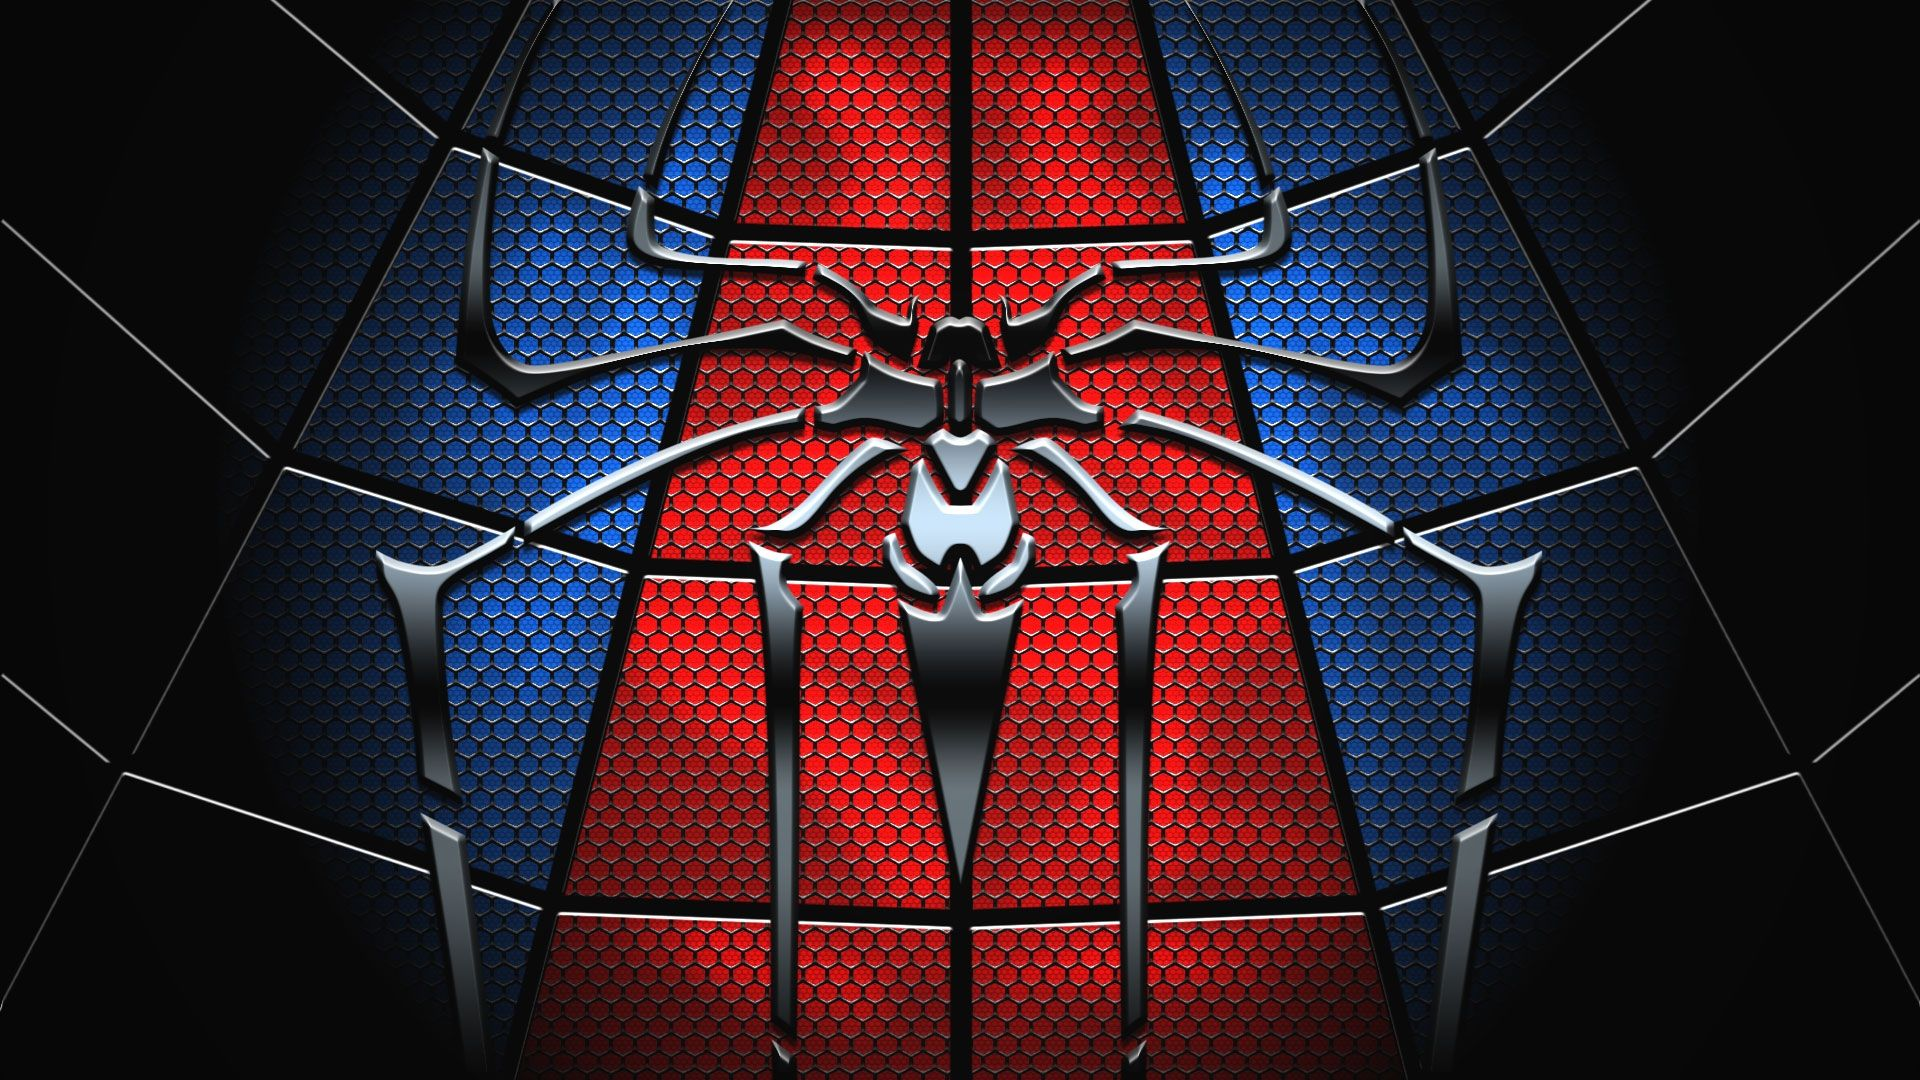 Spiderman Wallpapers For Pc Group Spiderman Pictures Spiderman Images 4k Wallpapers For Pc